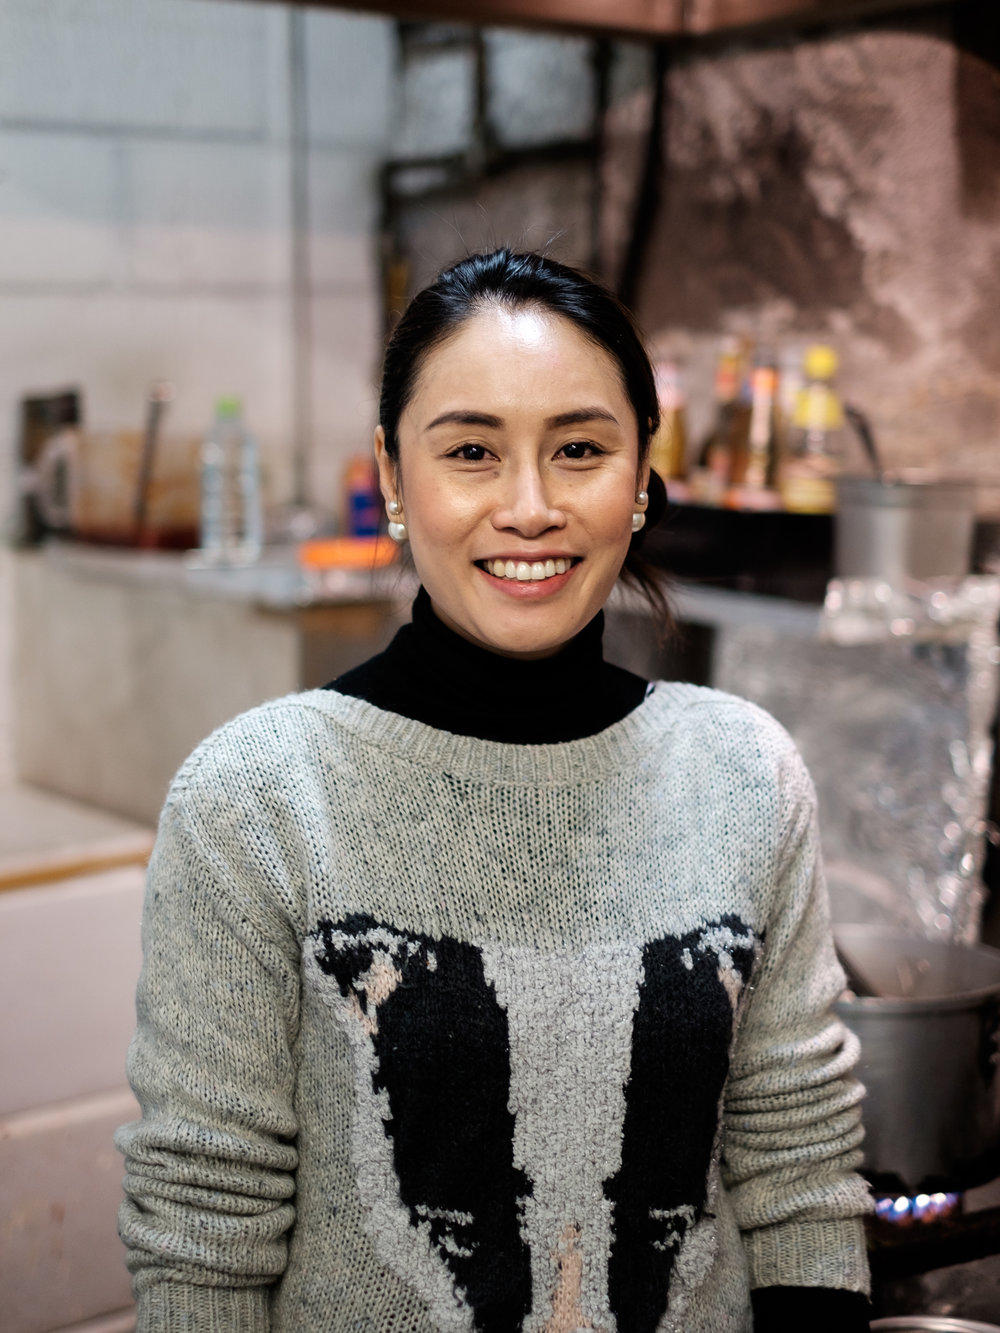 How This Thai Chef Taught Herself To Cook Using YouTube - Munchies